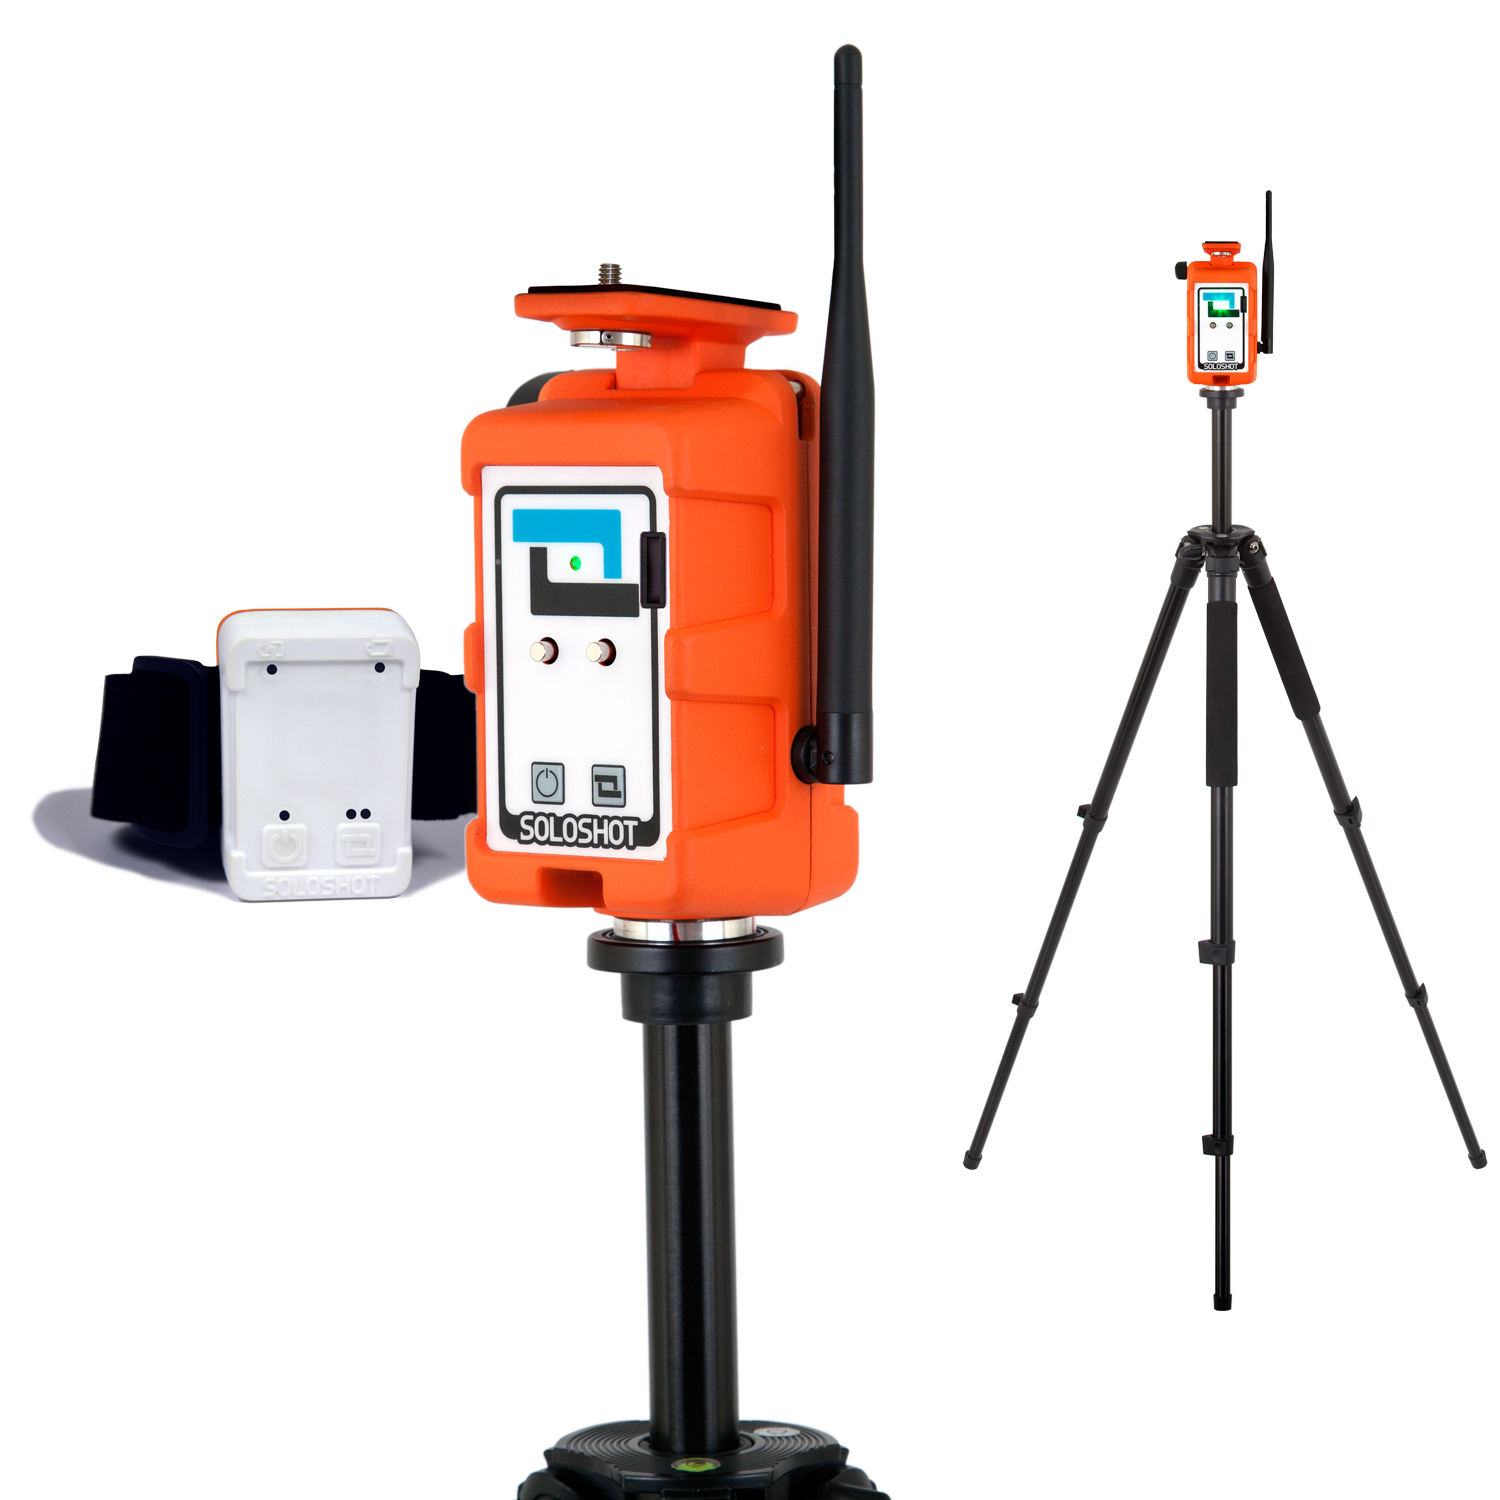 soloshot automatic tracking tripod system from soloshot With automatic tracking system